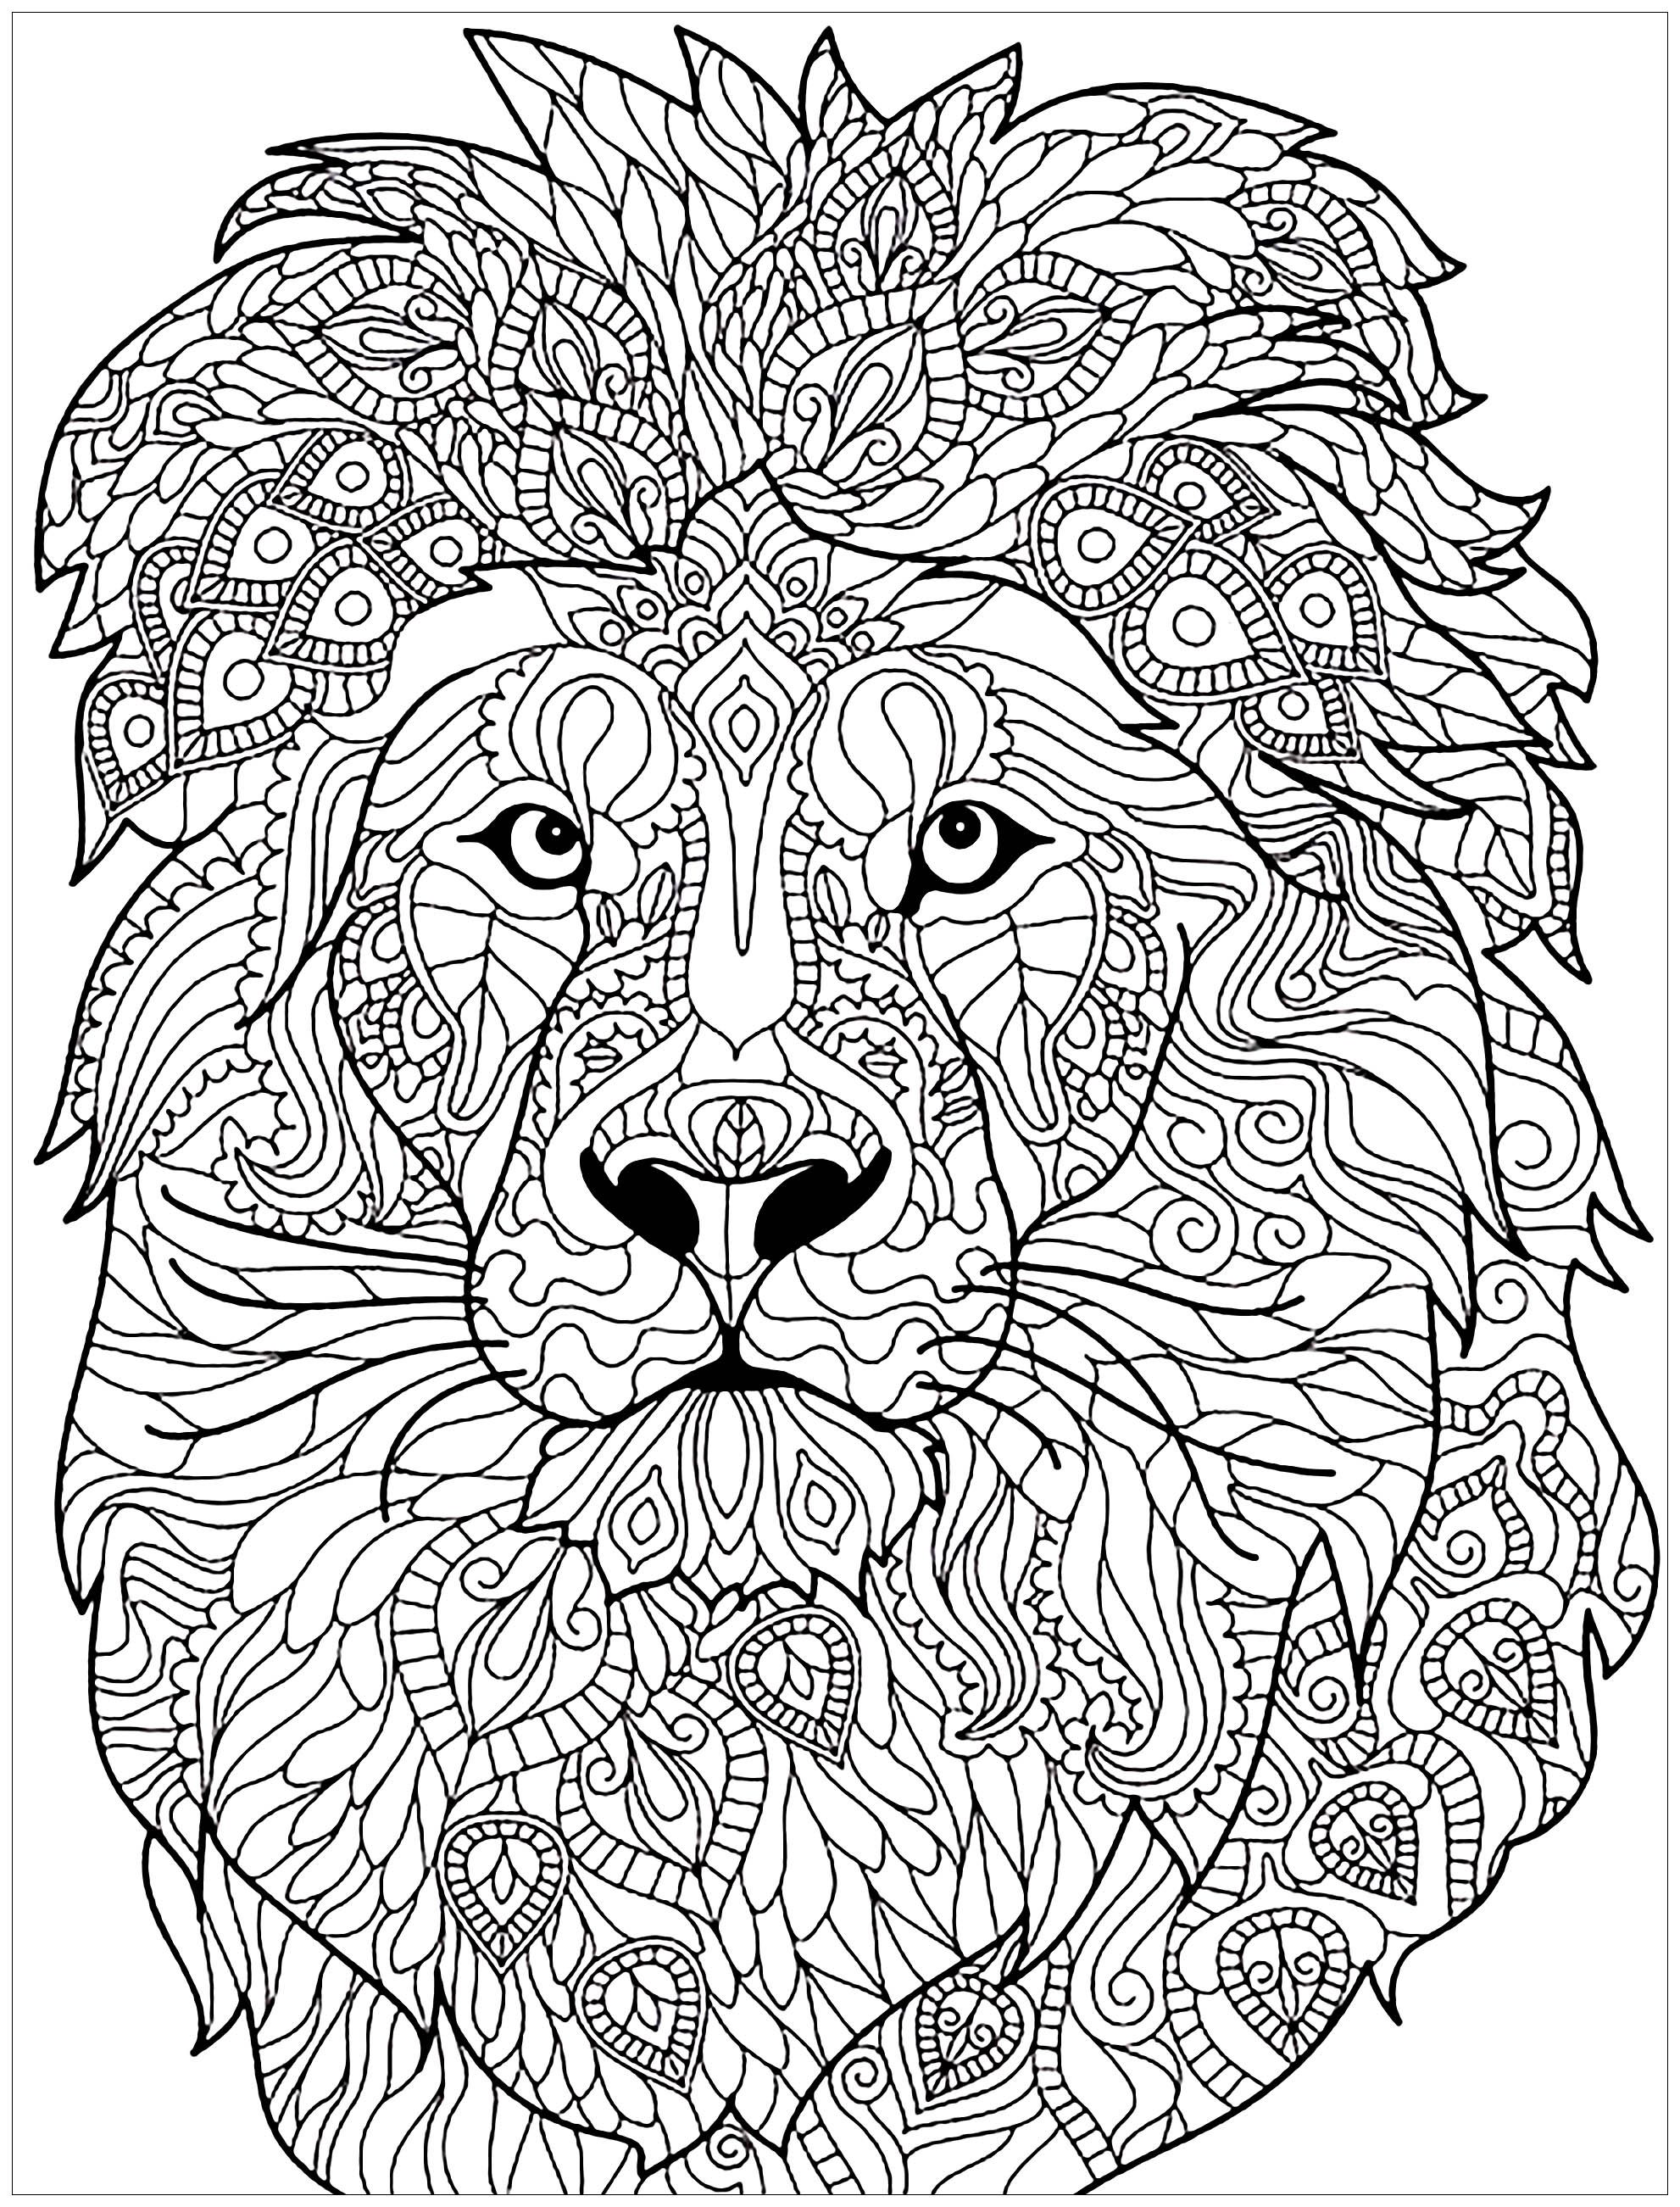 Lion Complex Patterns Lion Head With Very Complex Patterns From The Gallery Lions Just C Lion Coloring Pages Animal Coloring Books Mandala Coloring Pages